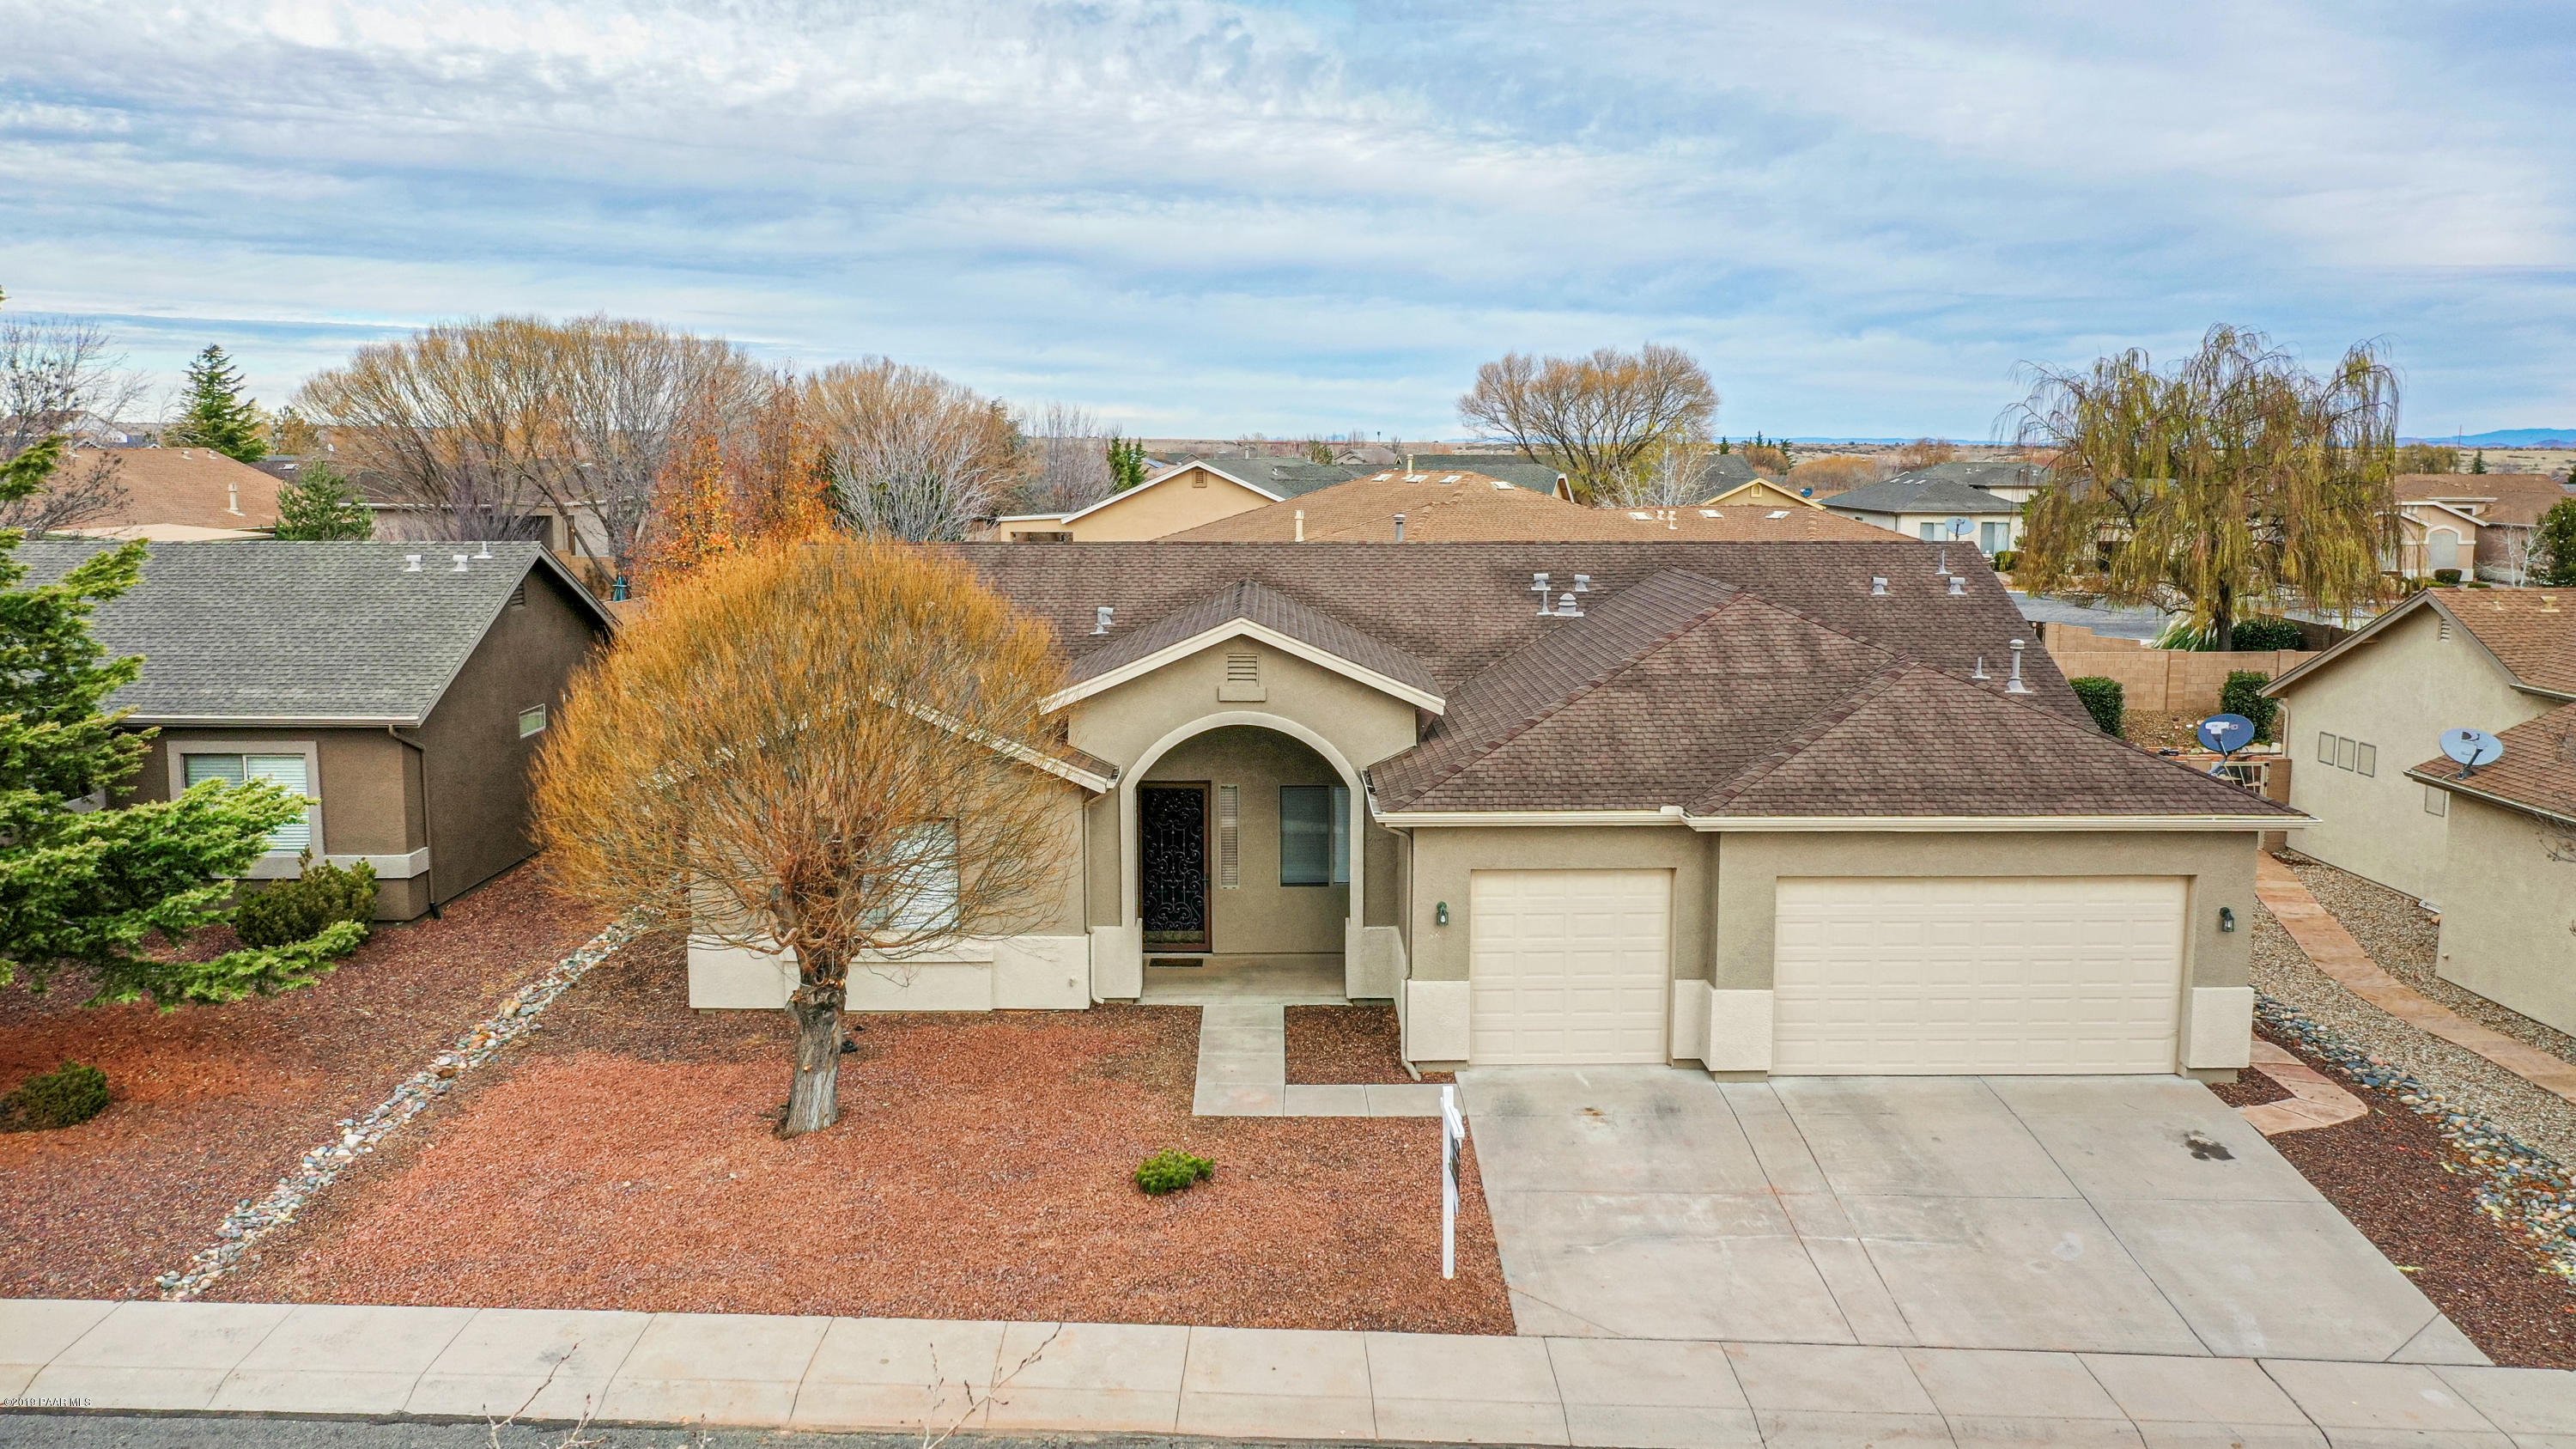 Photo of 6686 Mayflower, Prescott Valley, AZ 86314